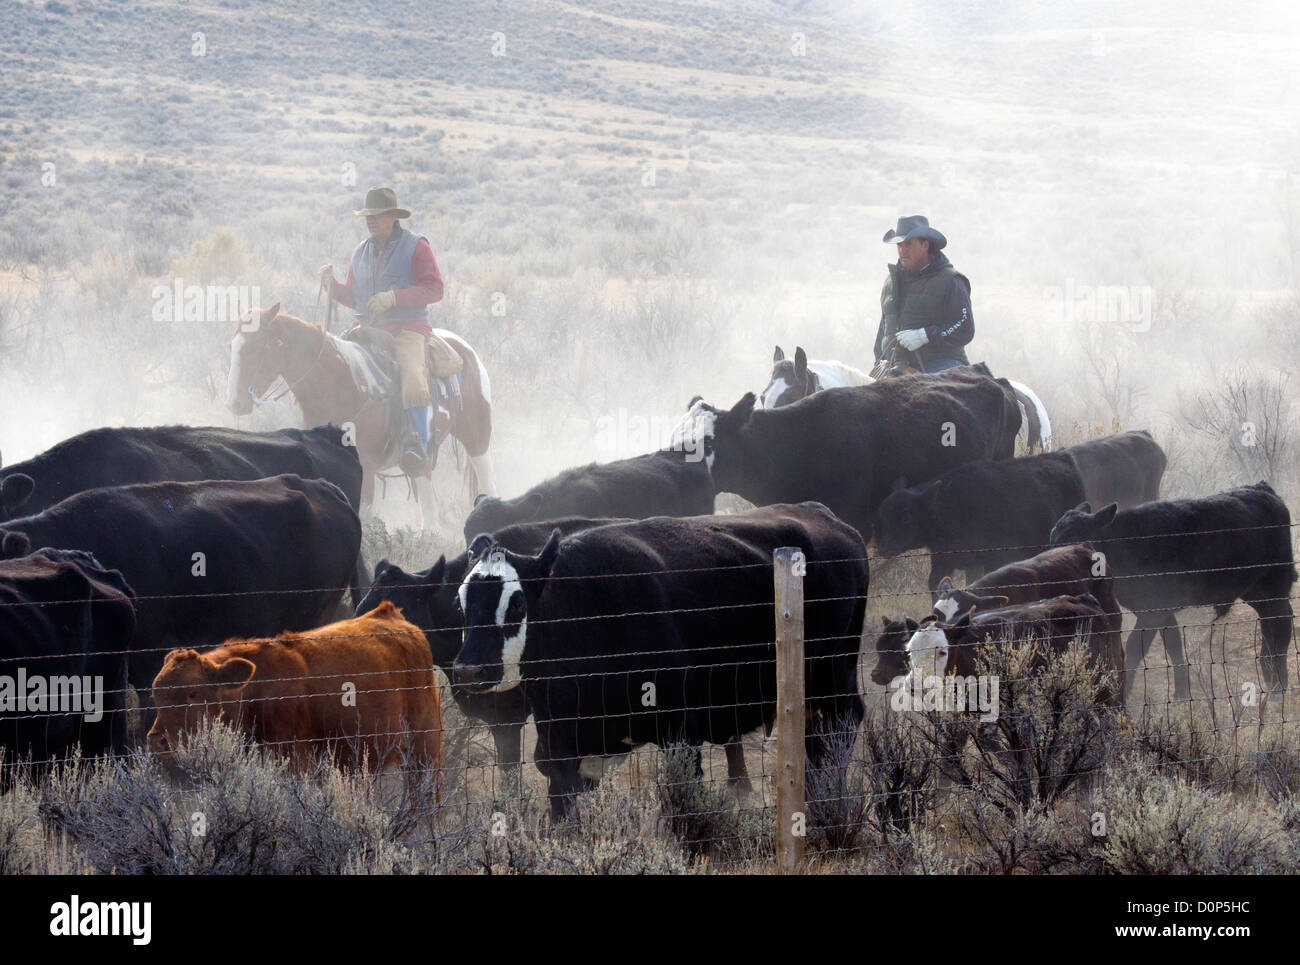 Two Cowboys Herding Cattle on a Dusty Road - Stock Image